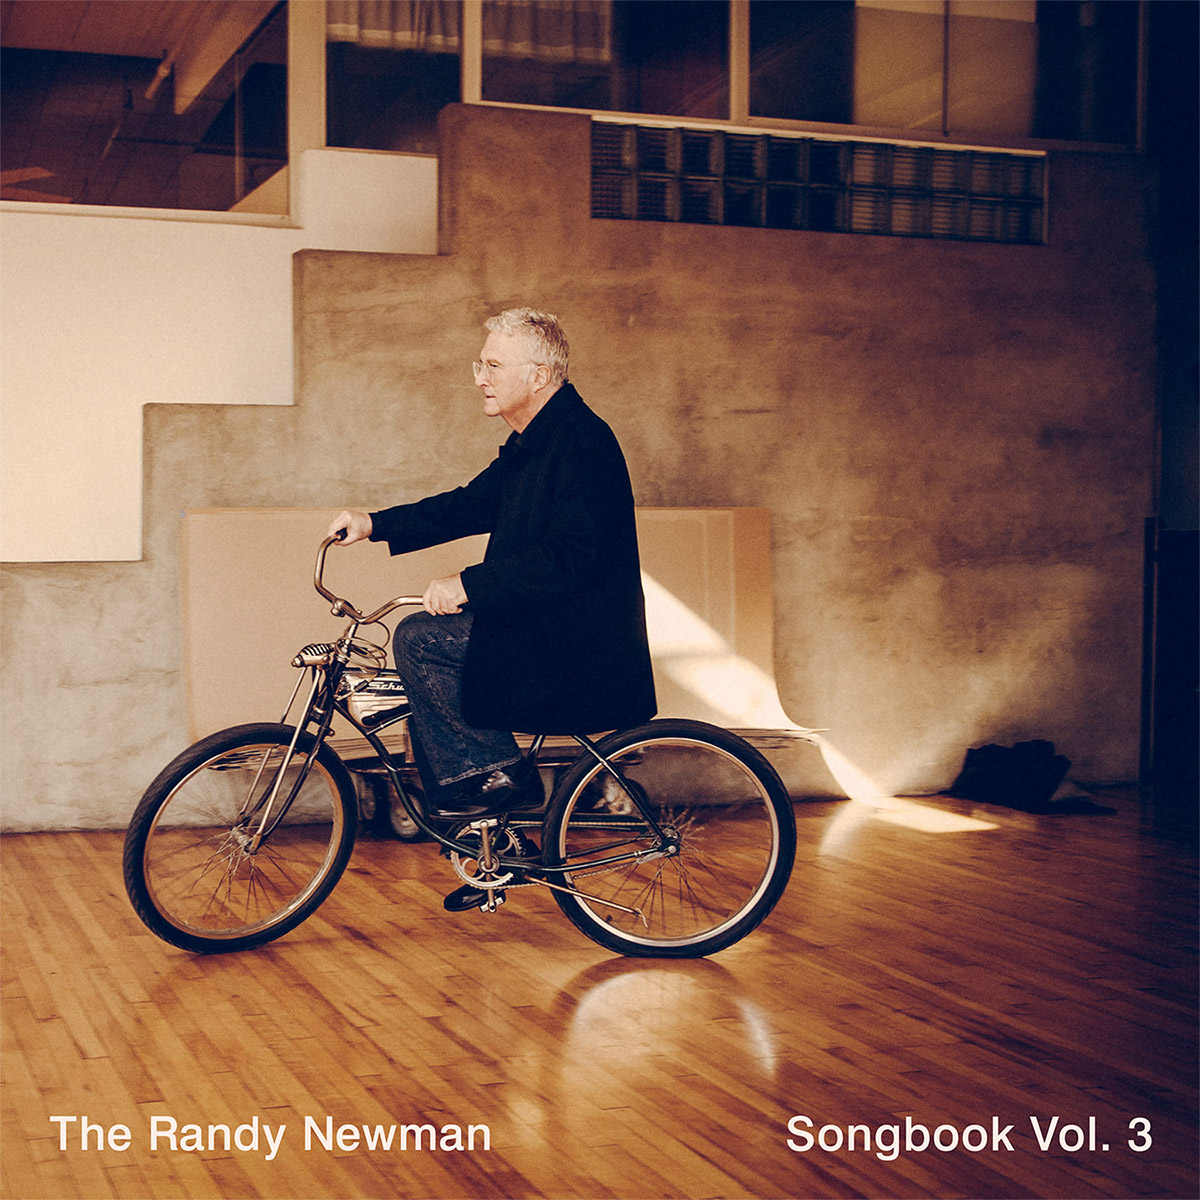 Songbook Vol 3 cover